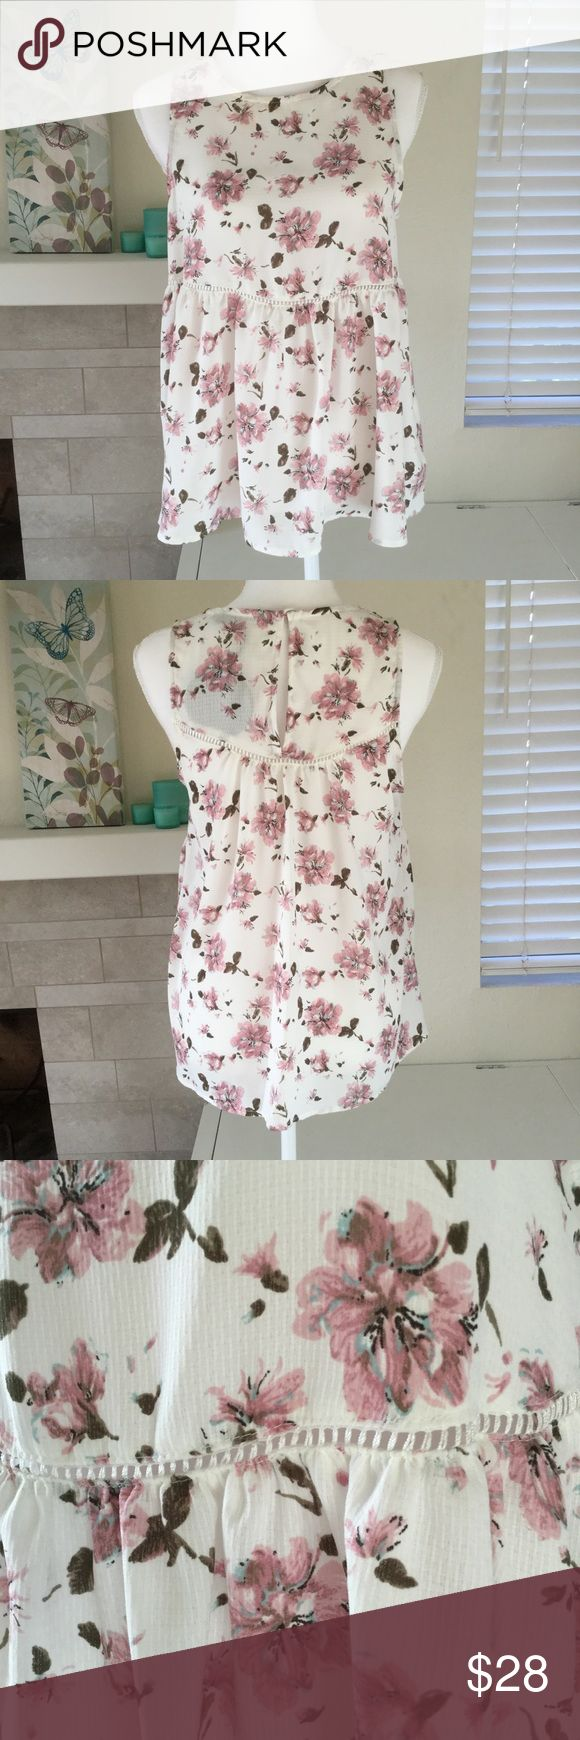 "🆕 NWT floral peplum blouse Girly peplum floral blouse ready to take on the town!  🐾 White base with pink flowers and brown leaves 🐾 Scoop neck 🐾 Narrow open band at waist 🐾 Keyhole with button closure at back neck 🐾 Sleeveless 🐾 Bust: 18"" 🐾 Length: 25 1/2"" 🐾 100% polyester 🐾 Hand wash, lay flat to dry 🐾 NWT 🐾 Some minor discoloration at front neck (see fourth picture)  🐾 Bundle discount 🐾 No trades, no PP 🐾 Smoke free, pet friendly home Harlowe & Graham Tops Blouses"